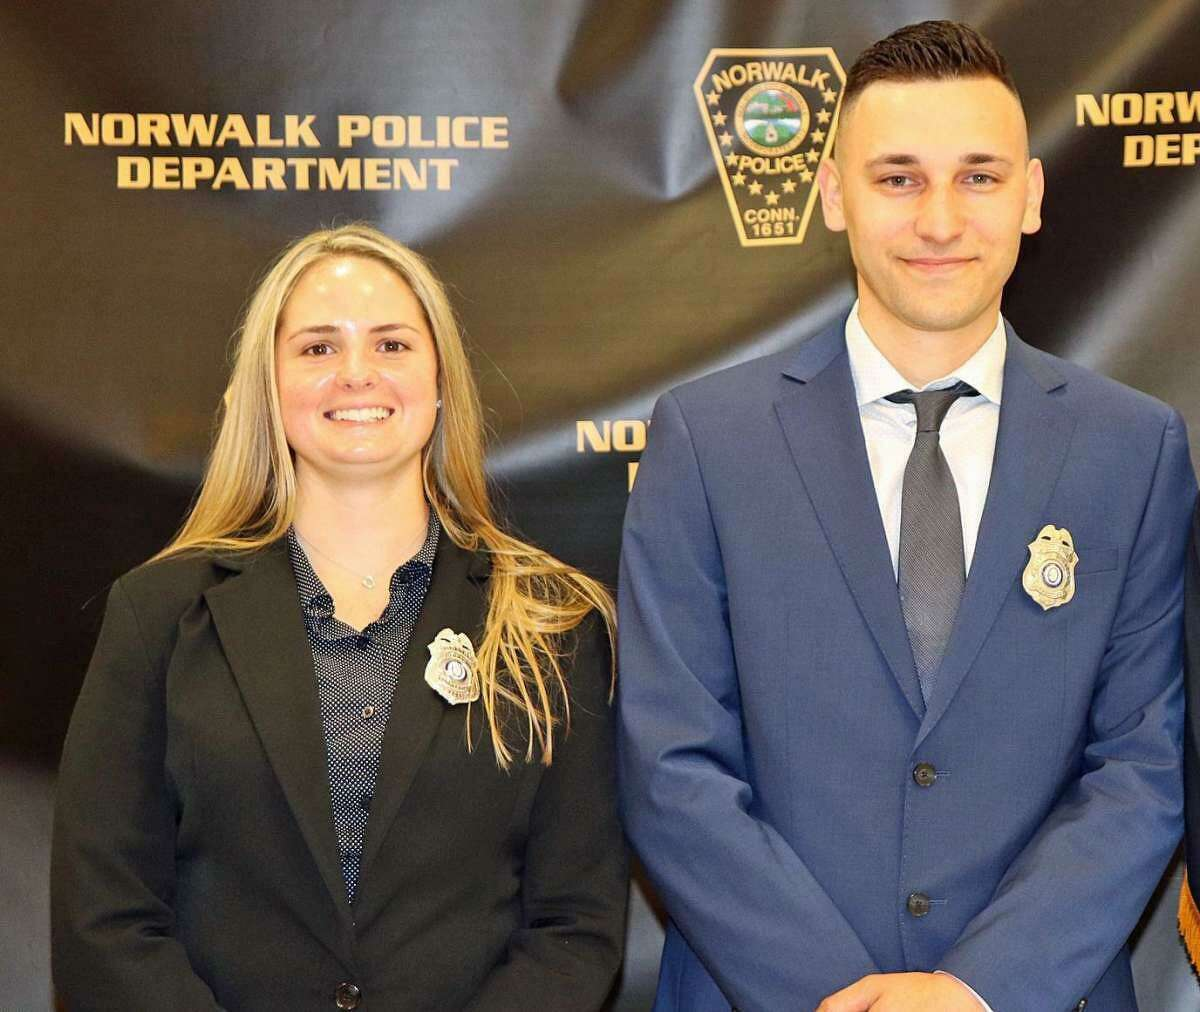 Chealsey Ortiz, left, and Mario Pecirep have been rehired by the Bridgeport Police Department after resigning from the Norwalk police one day after being sworn in.